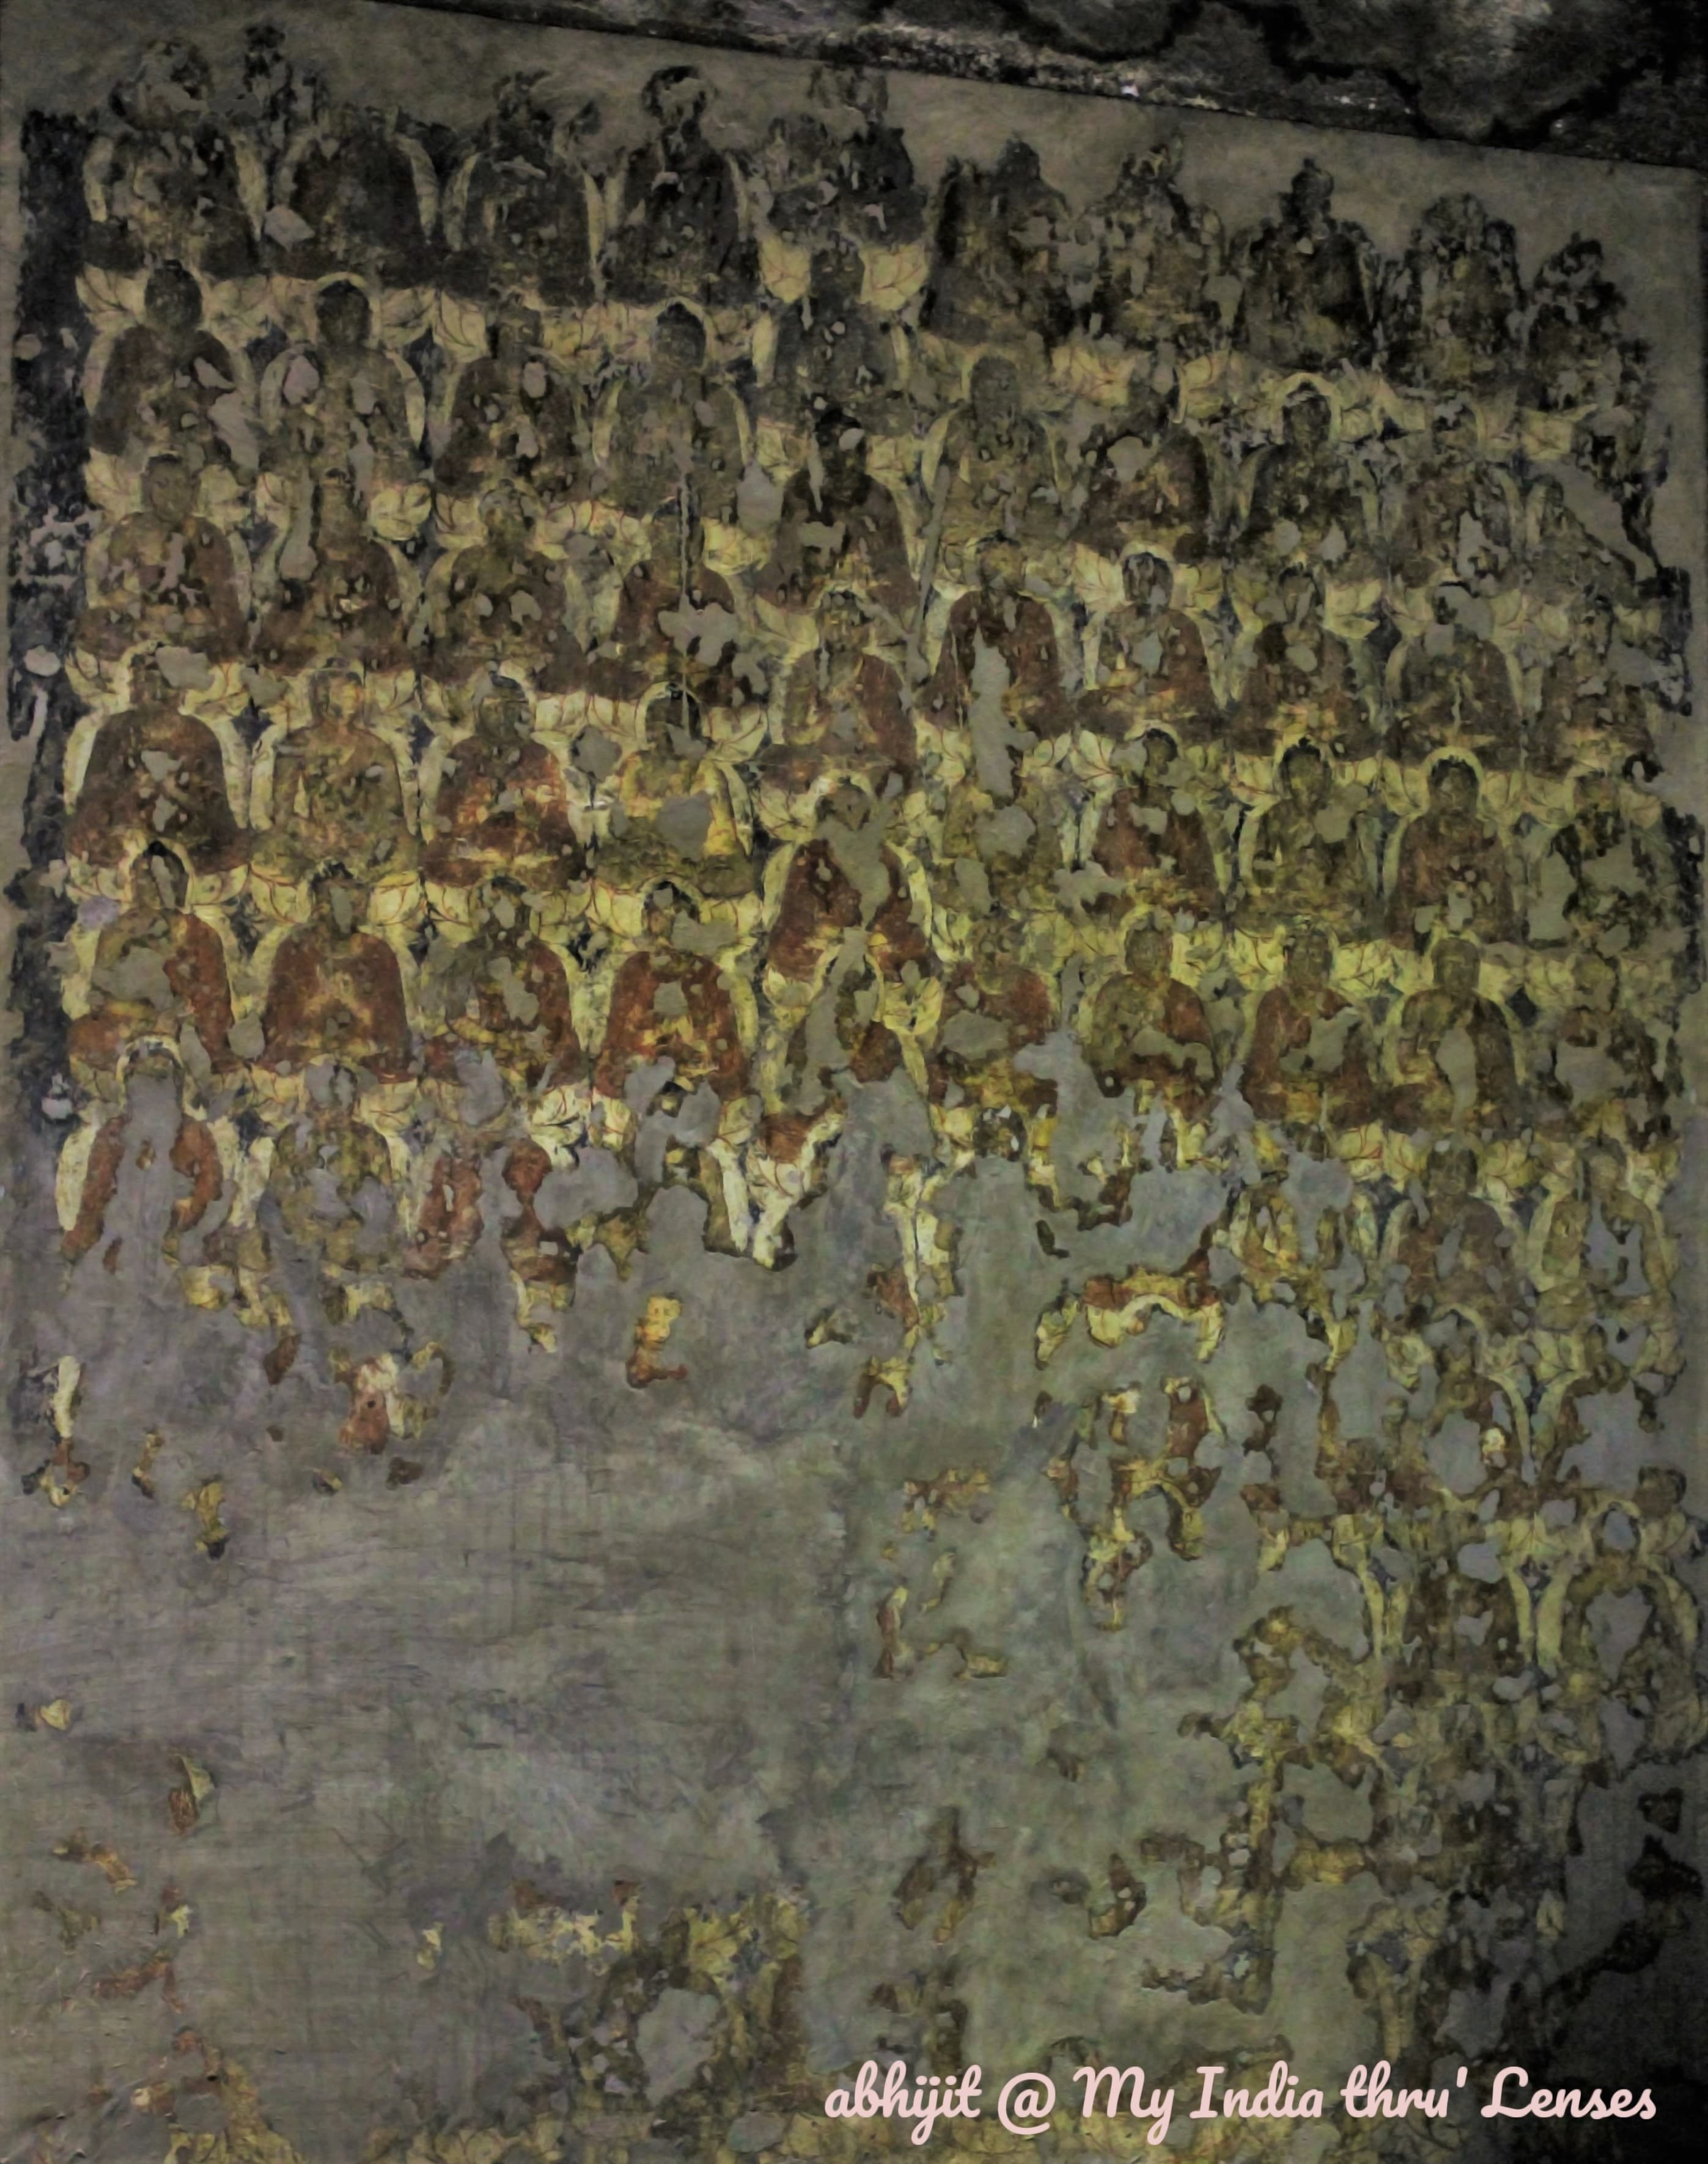 Part of the painting of 'Thousand Buddhas' on one of the walls of Cave 2